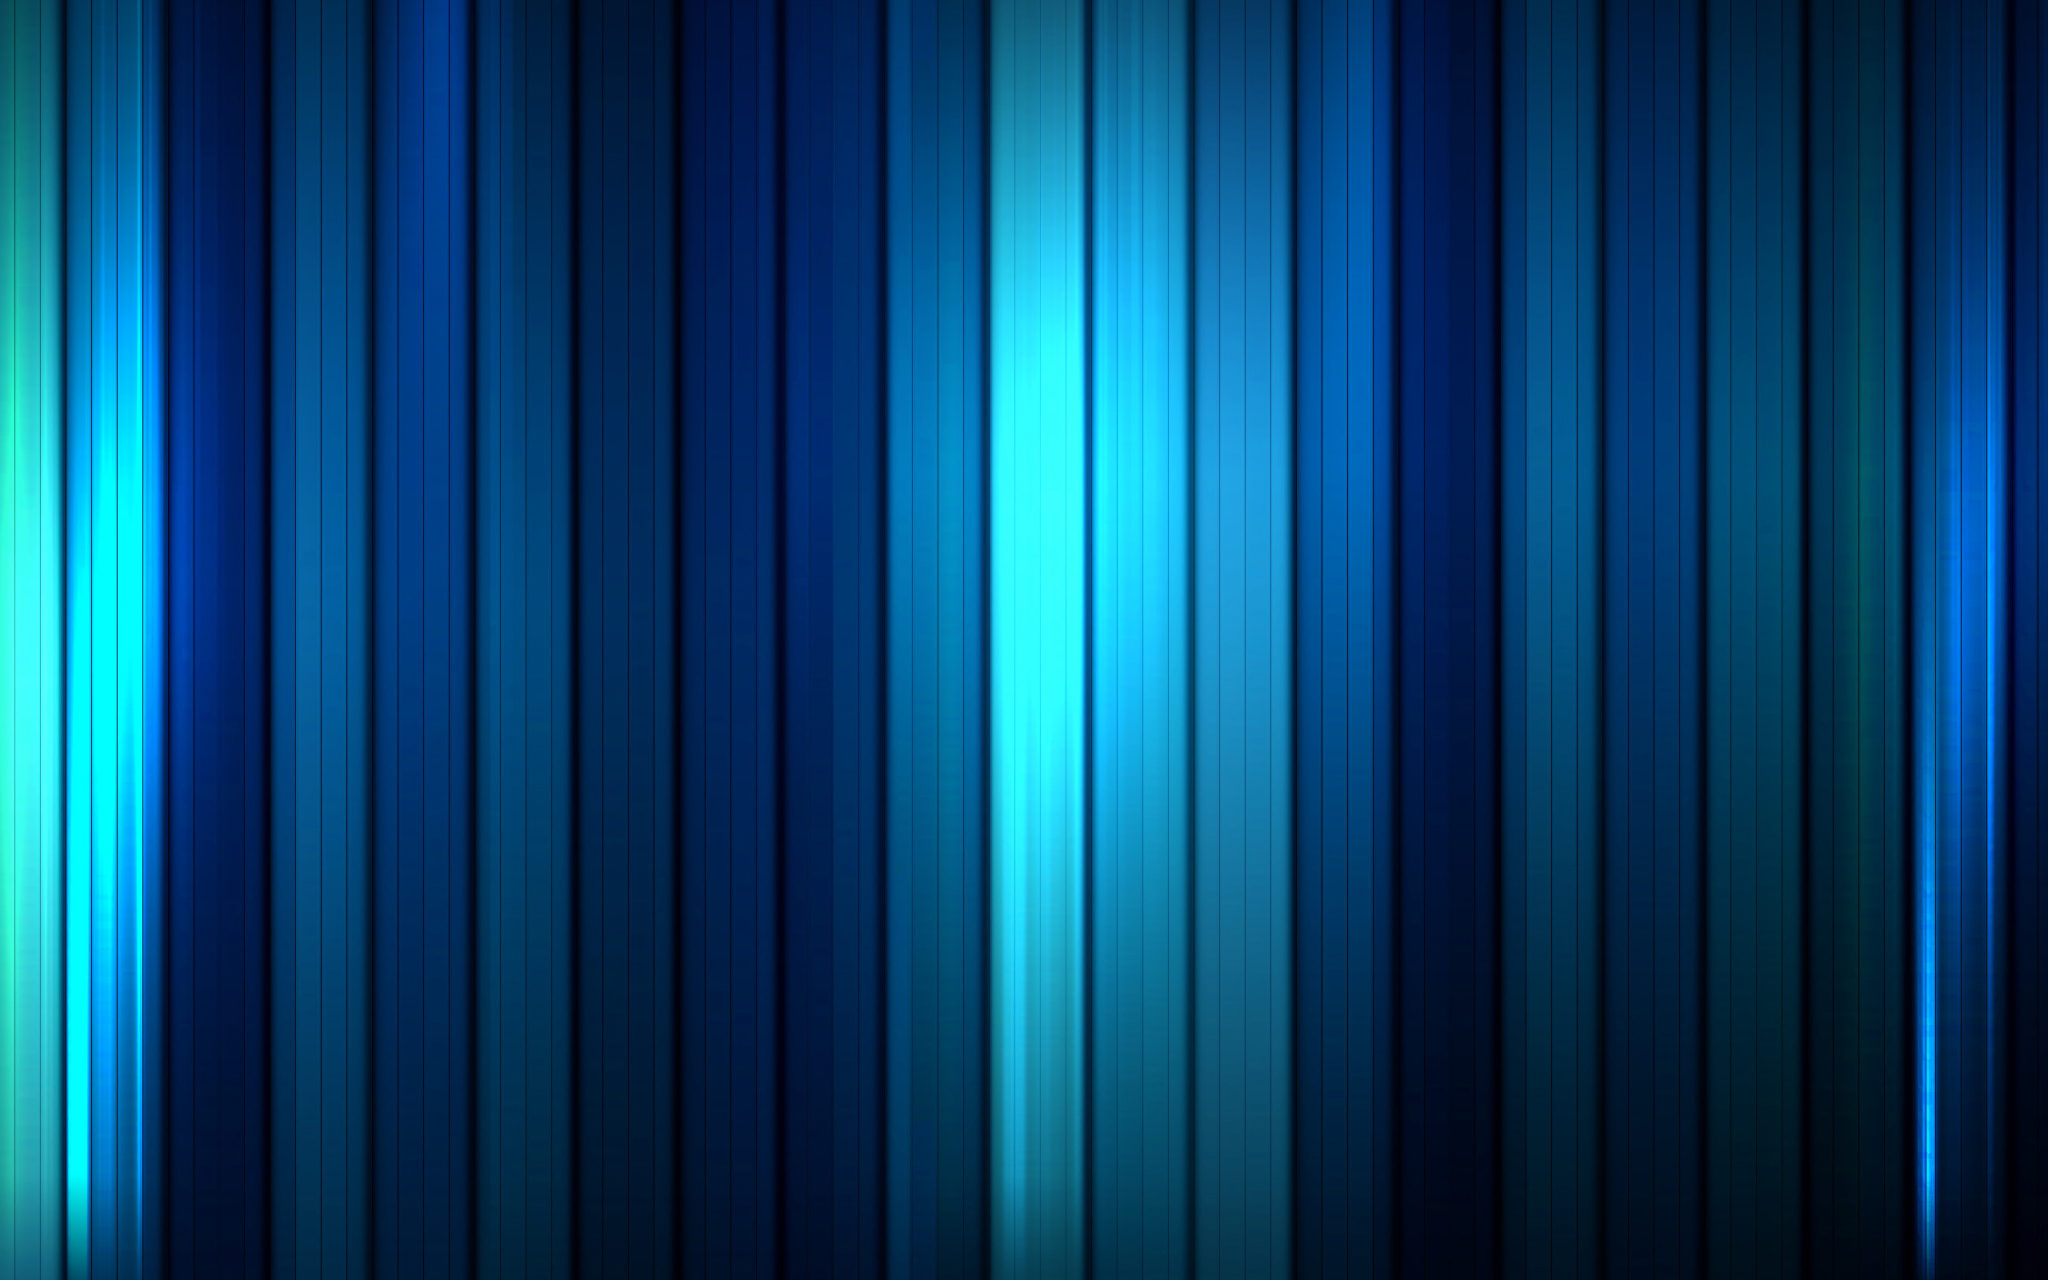 Blue Stripes Presentation Template for Keynote